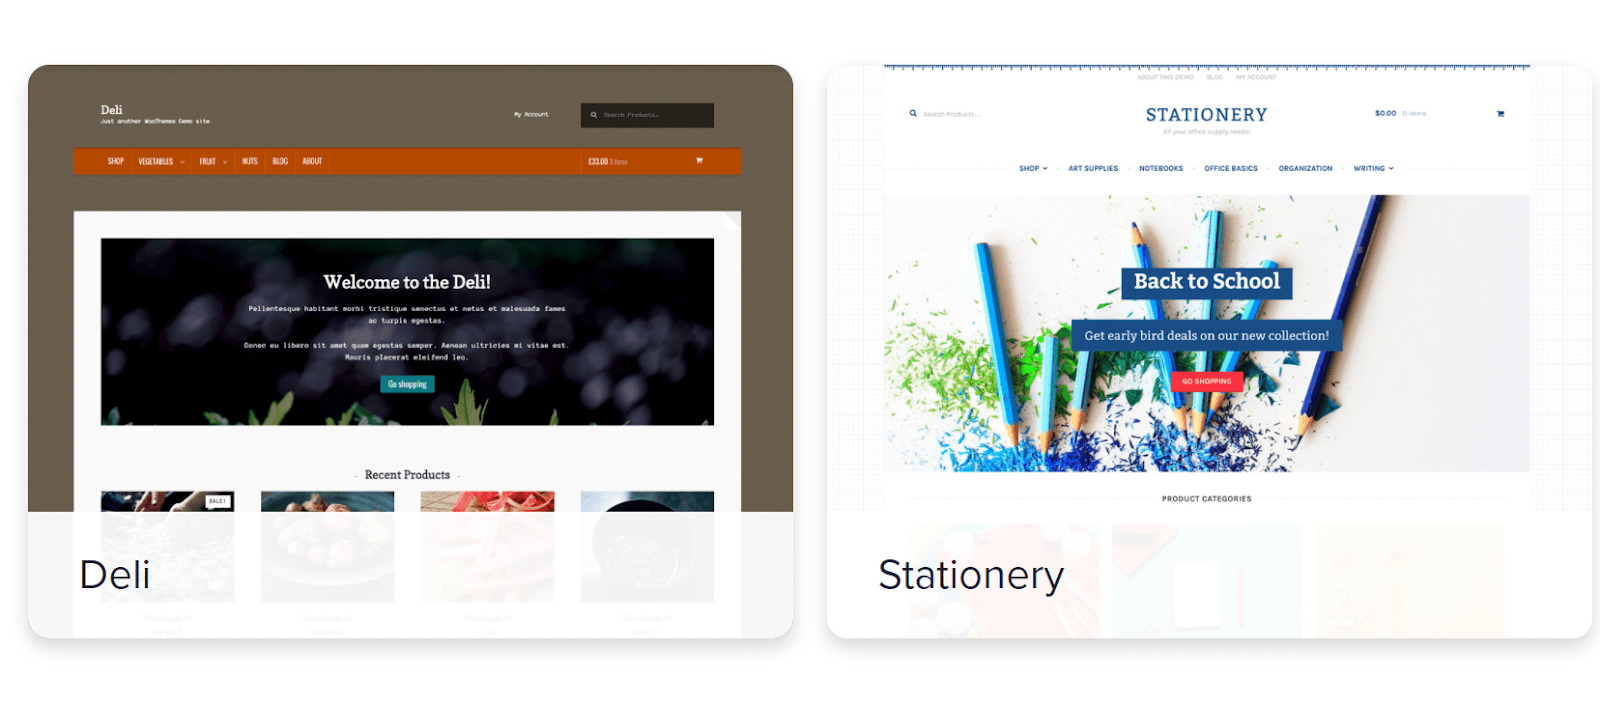 WooCommerce themes Deli and Stationery